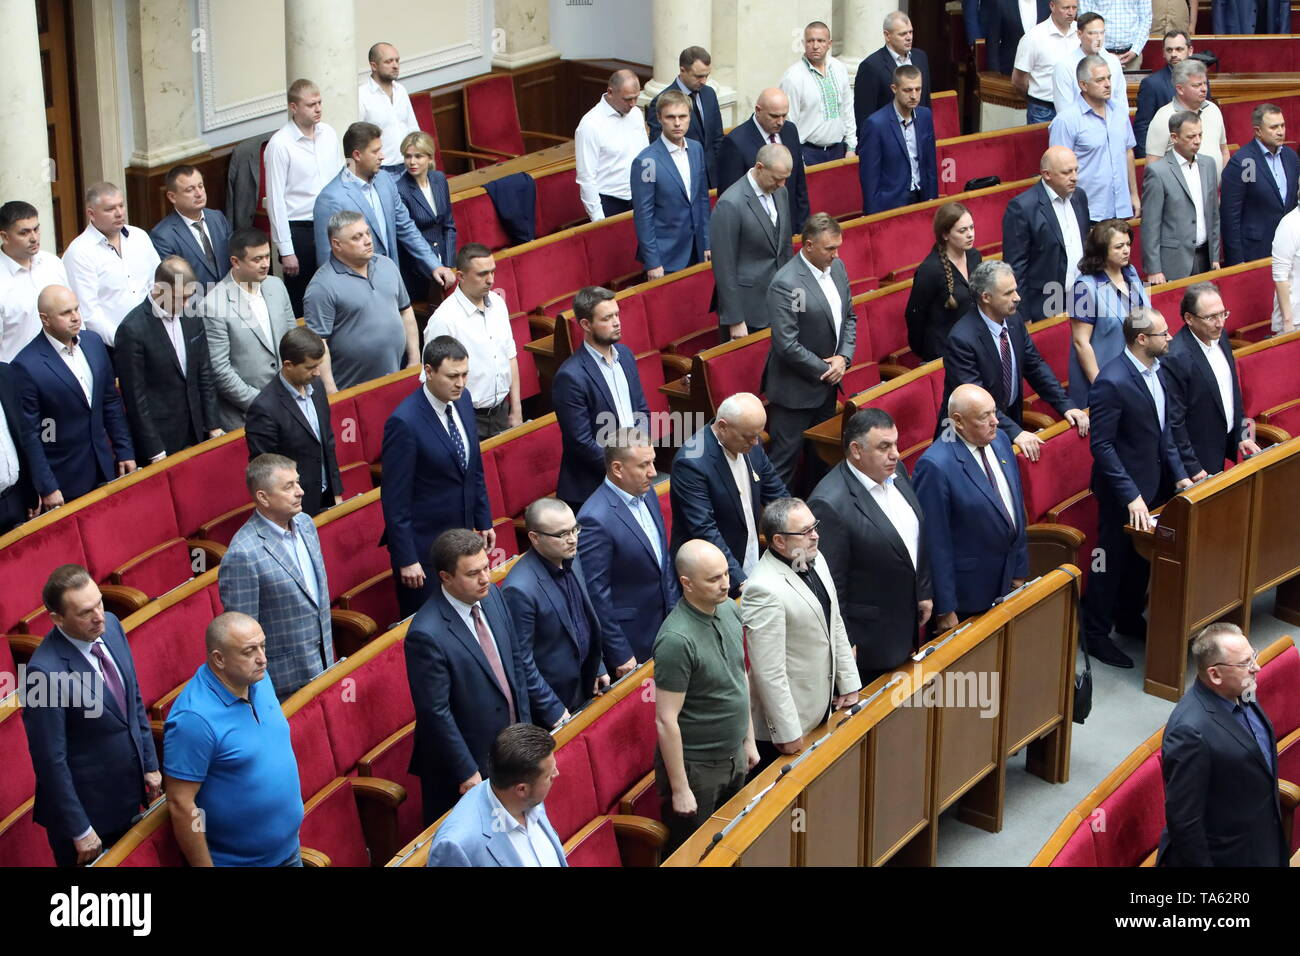 Kiev, Ukraine. 22nd May, 2019. KIEV, UKRAINE - MAY 22, 2019: Members of the Verkhovna Rada attend a special meeting initiated by Ukraine's President Volodymyr Zelensky; the two draft laws brought forward by Zelensky to reform the electoral system have failed to gain enough votes to be introduced to the Ukrainian parliament. Pyotr Sivkov/TASS Credit: ITAR-TASS News Agency/Alamy Live News - Stock Image